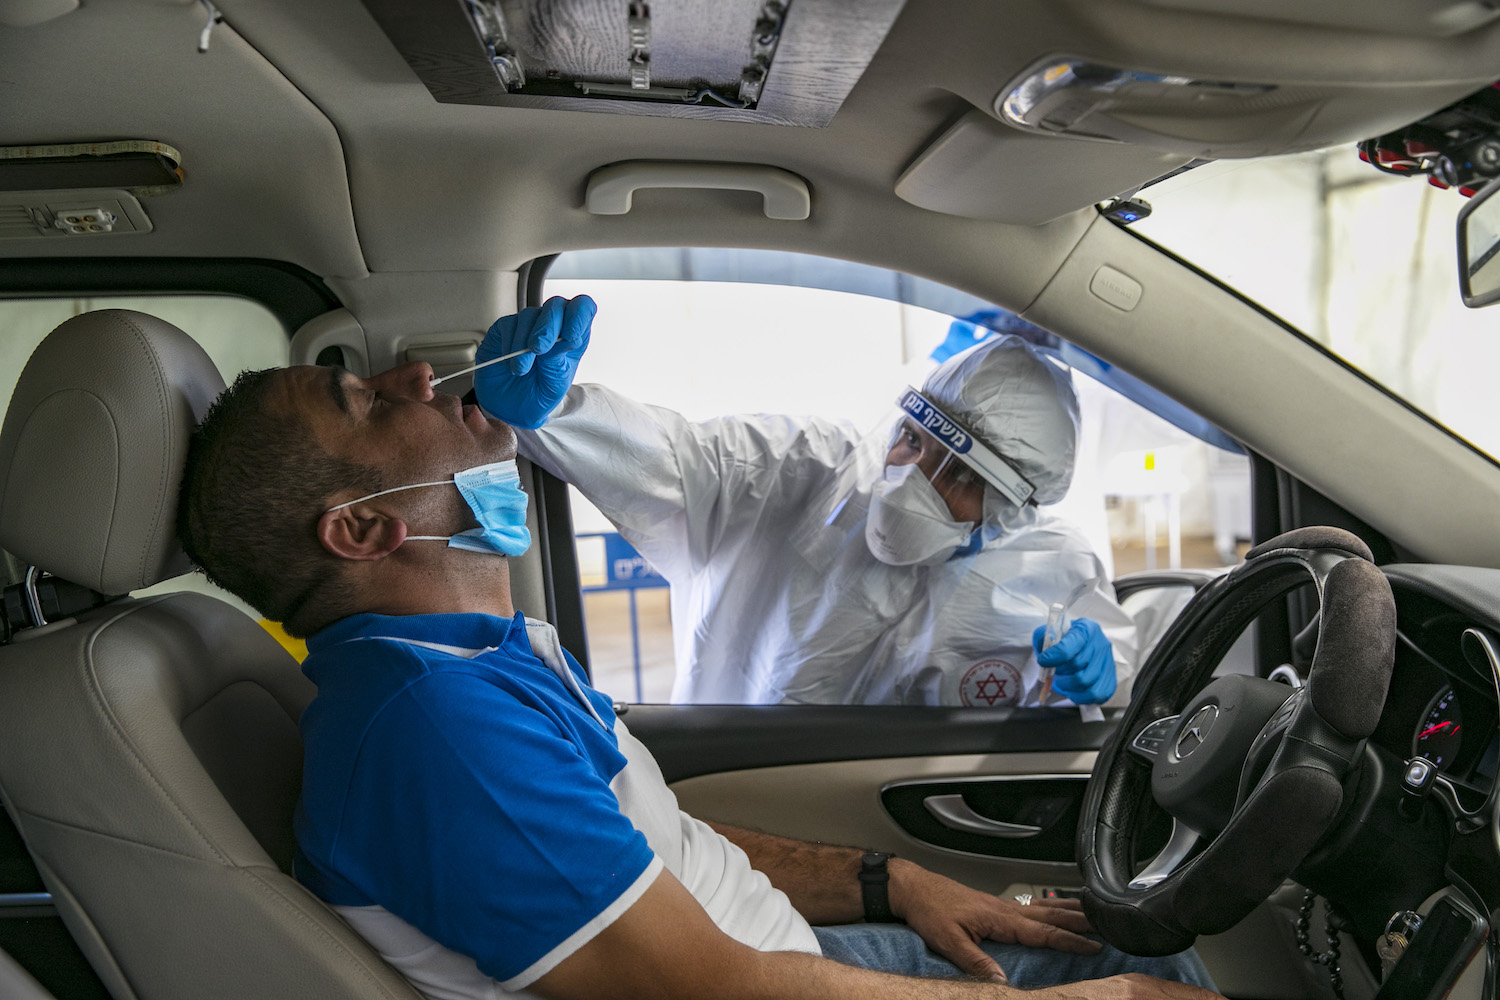 Magen David Adom medical workers perform COVID-19 tests at a drive-through site in the East Jerusalem neighborhood of Jabel Mukaber, August 18, 2020. (Olivier Fitoussi/Flash90)